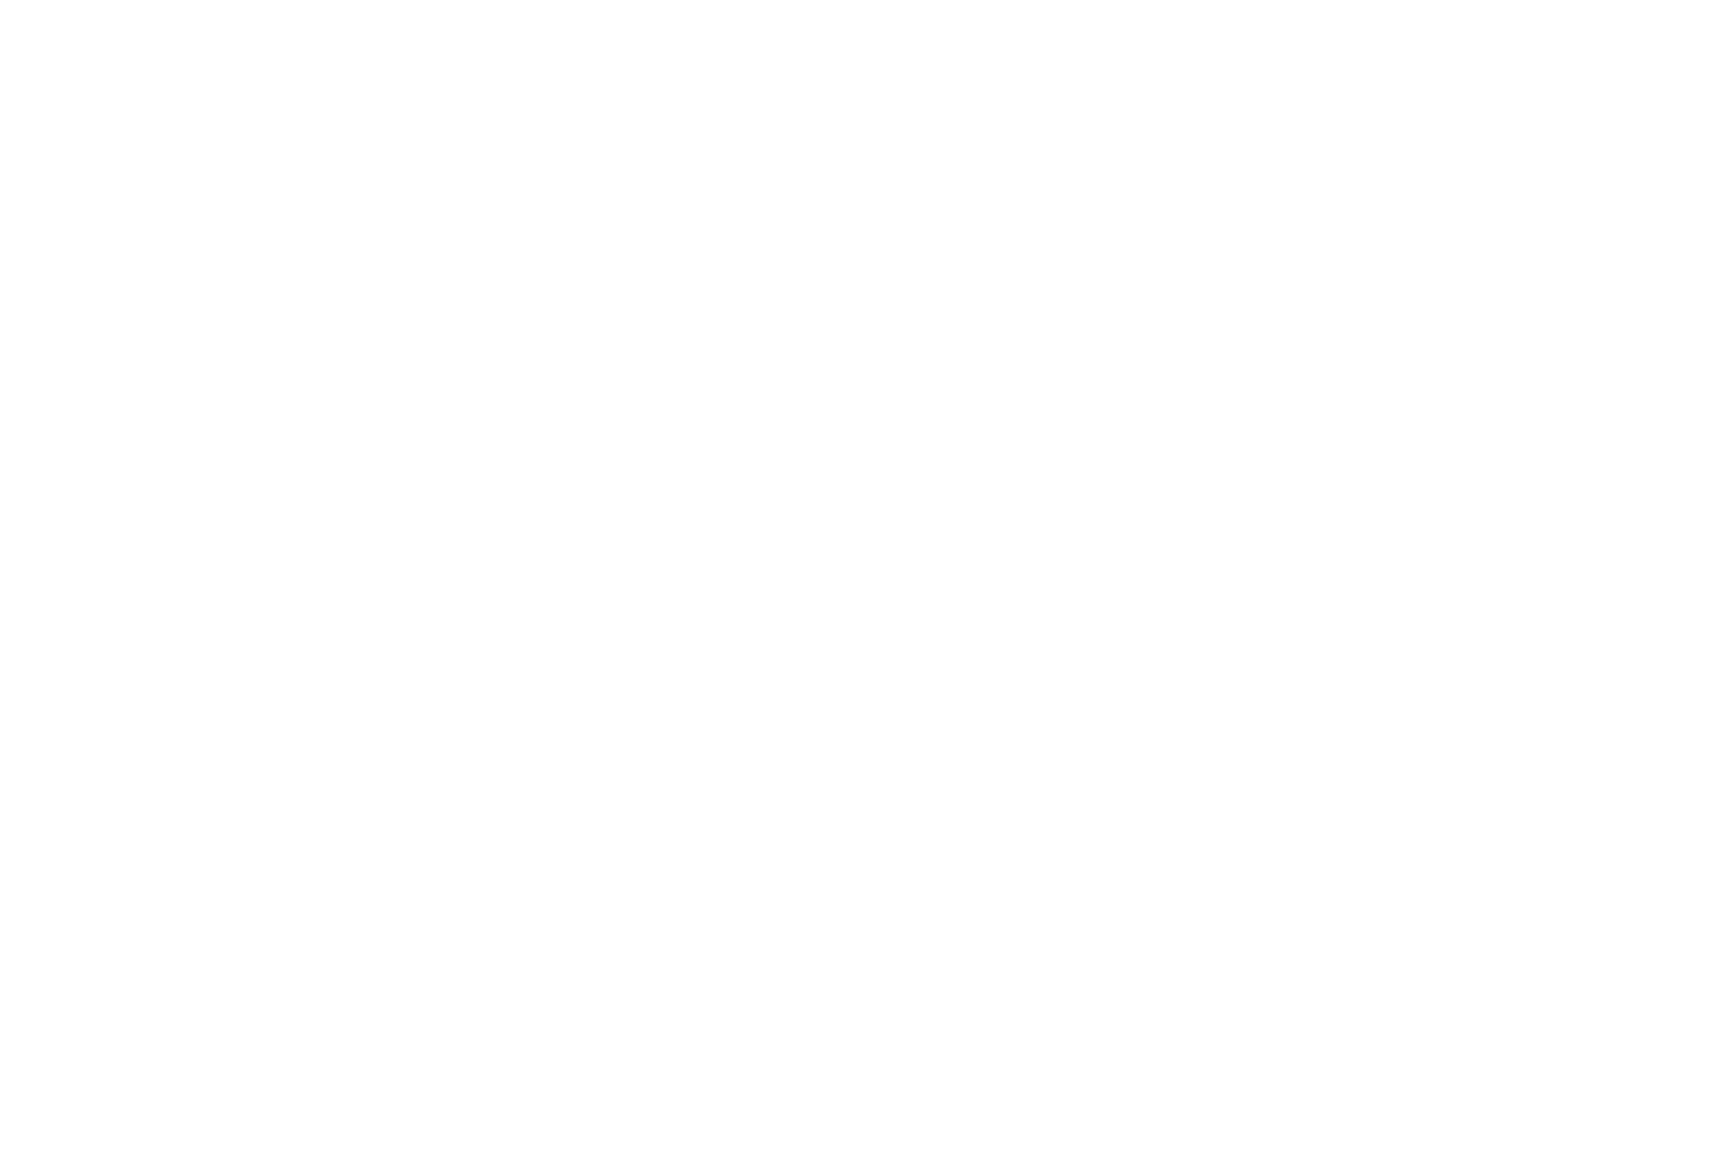 OFFICIAL SELECTION - Astronomy On Tap Leiden - 2018.png